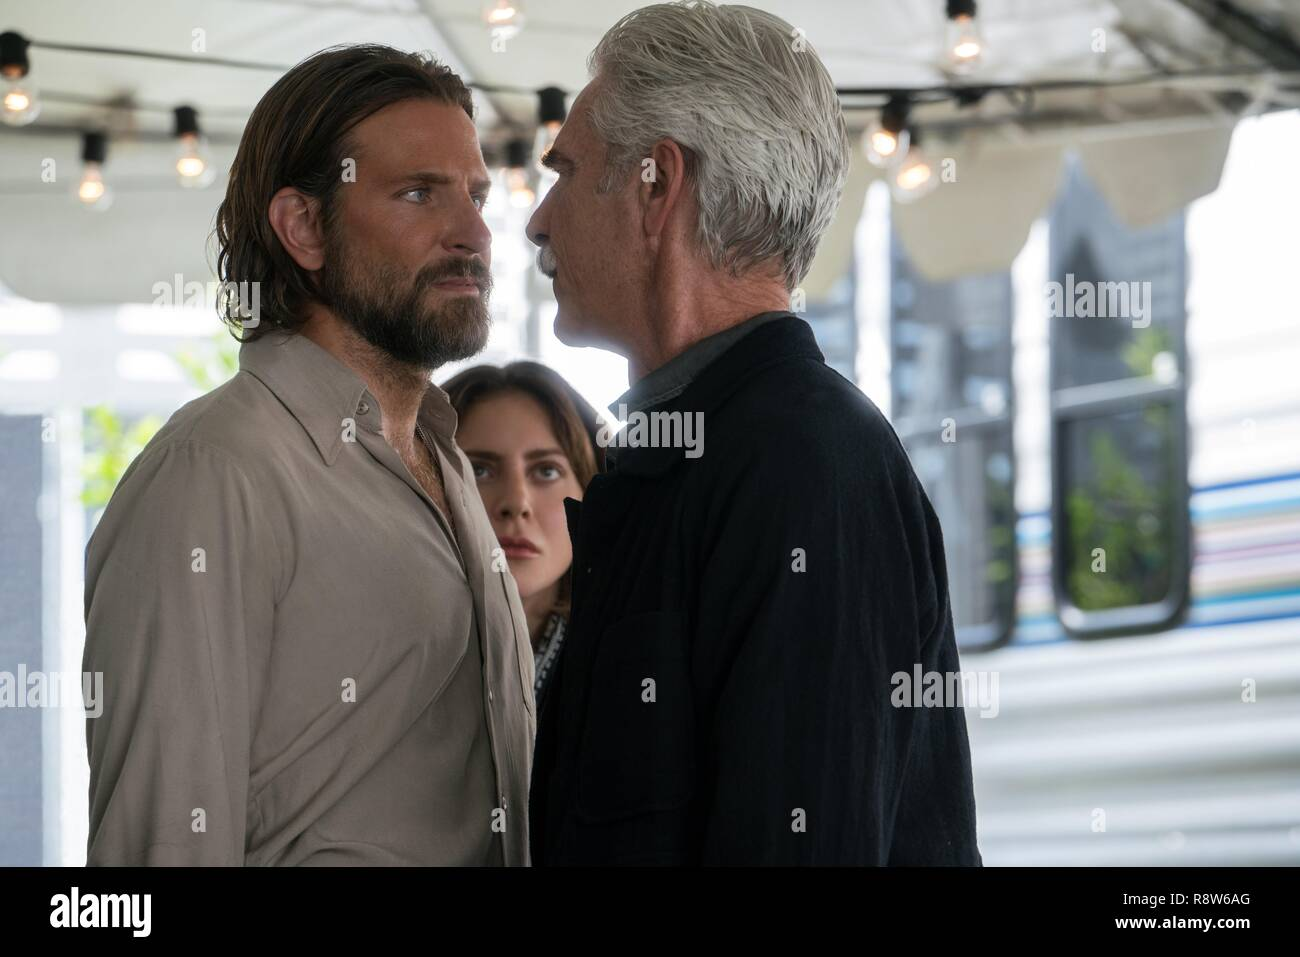 Original film title: A STAR IS BORN. English title: A STAR IS BORN. Year: 2018. Director: BRADLEY COOPER. Stars: BRADLEY COOPER; LADY GAGA. Credit: Gerber Pictures/Joint Effort/Live Nation/Malpaso Productions / Album - Stock Image